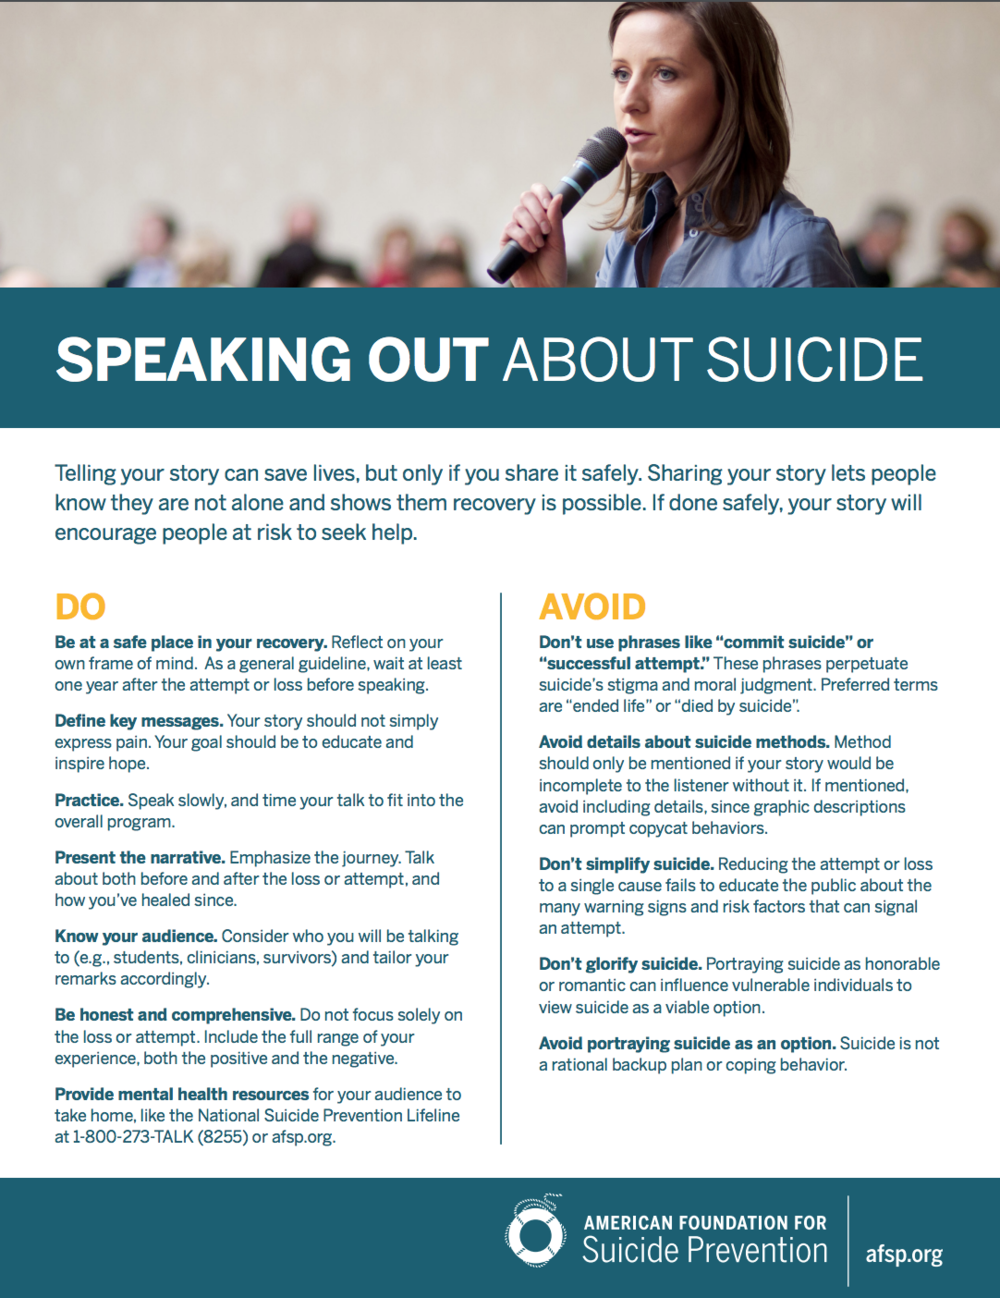 Speaking Out About Suicide - American Foundation for Suicide Prevention